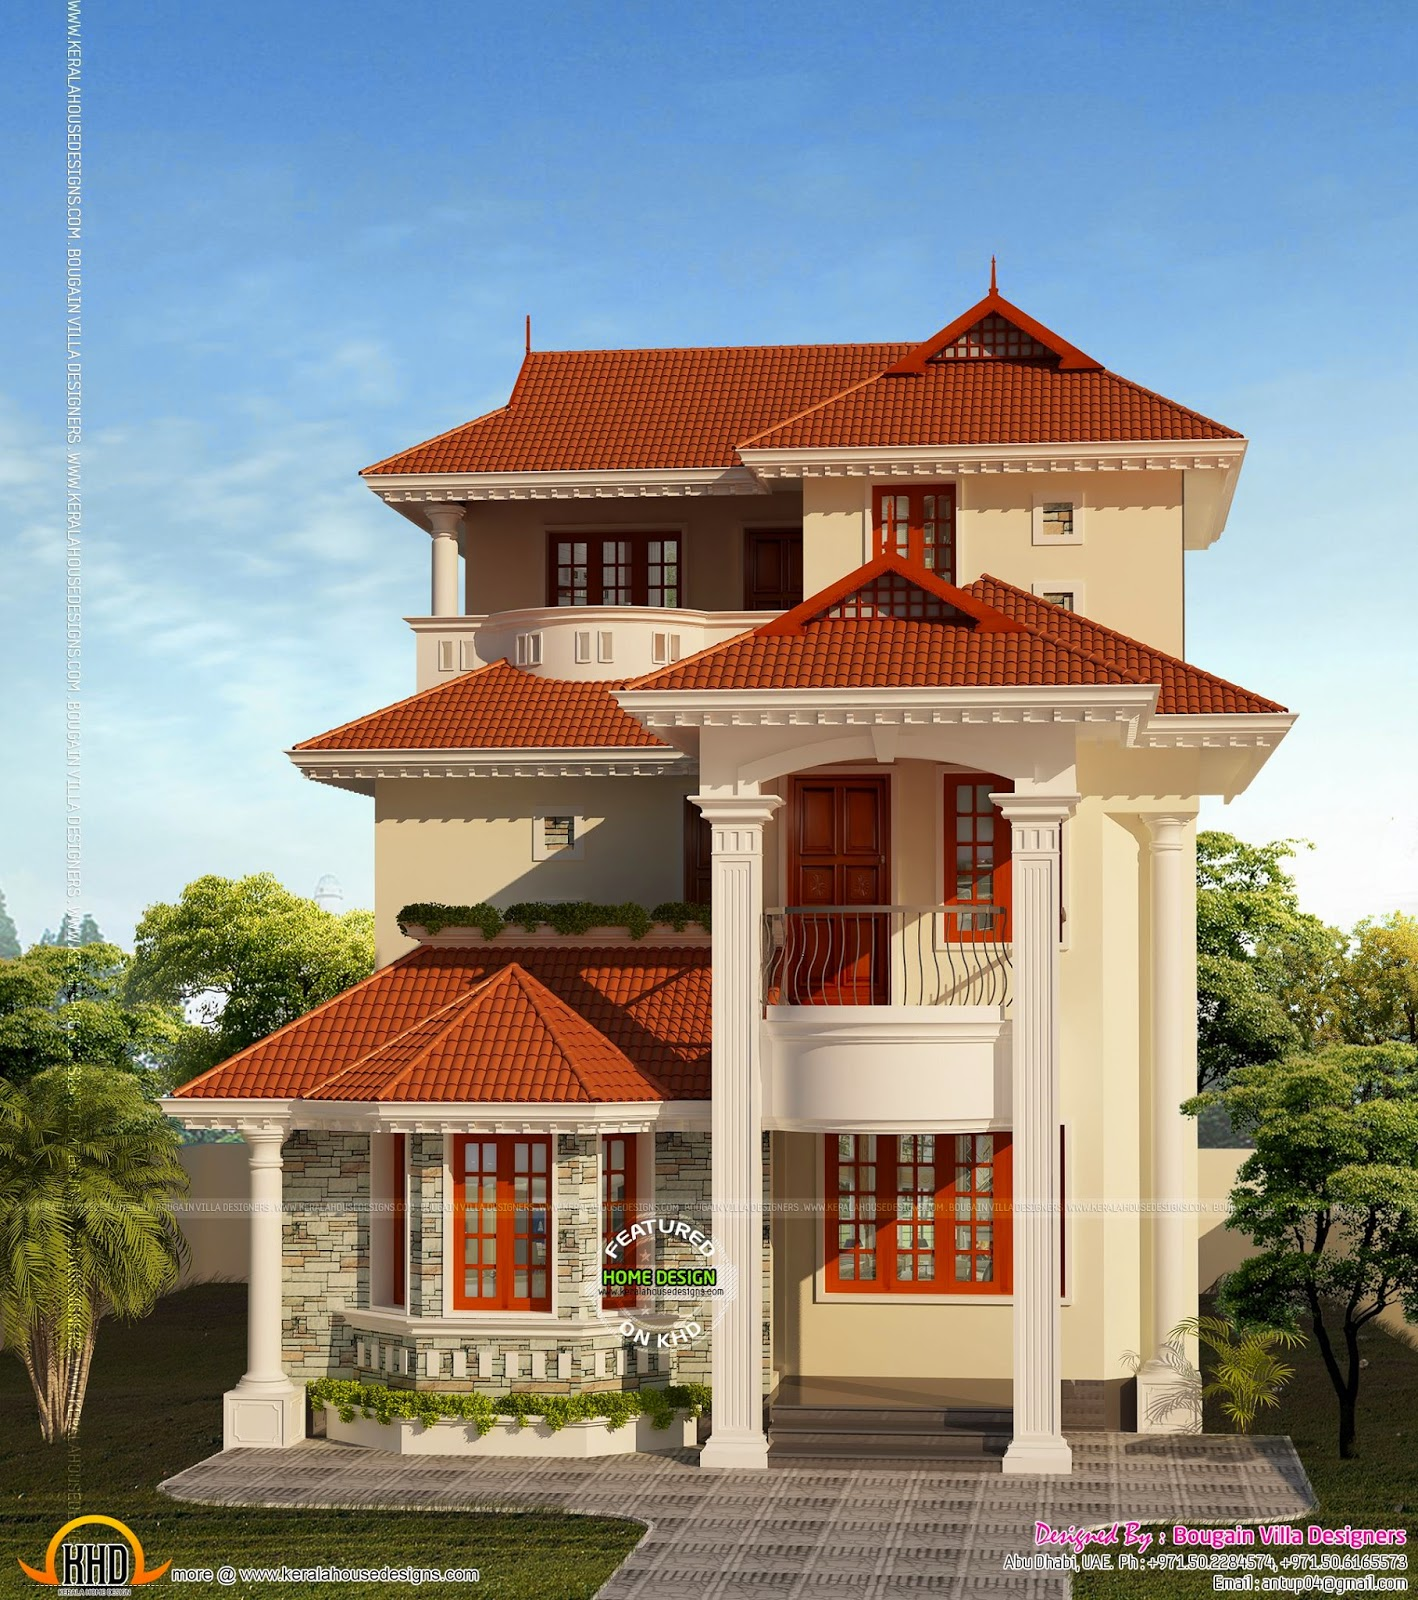 Small plot house plan kerala home design and floor plans for 3 floor house design